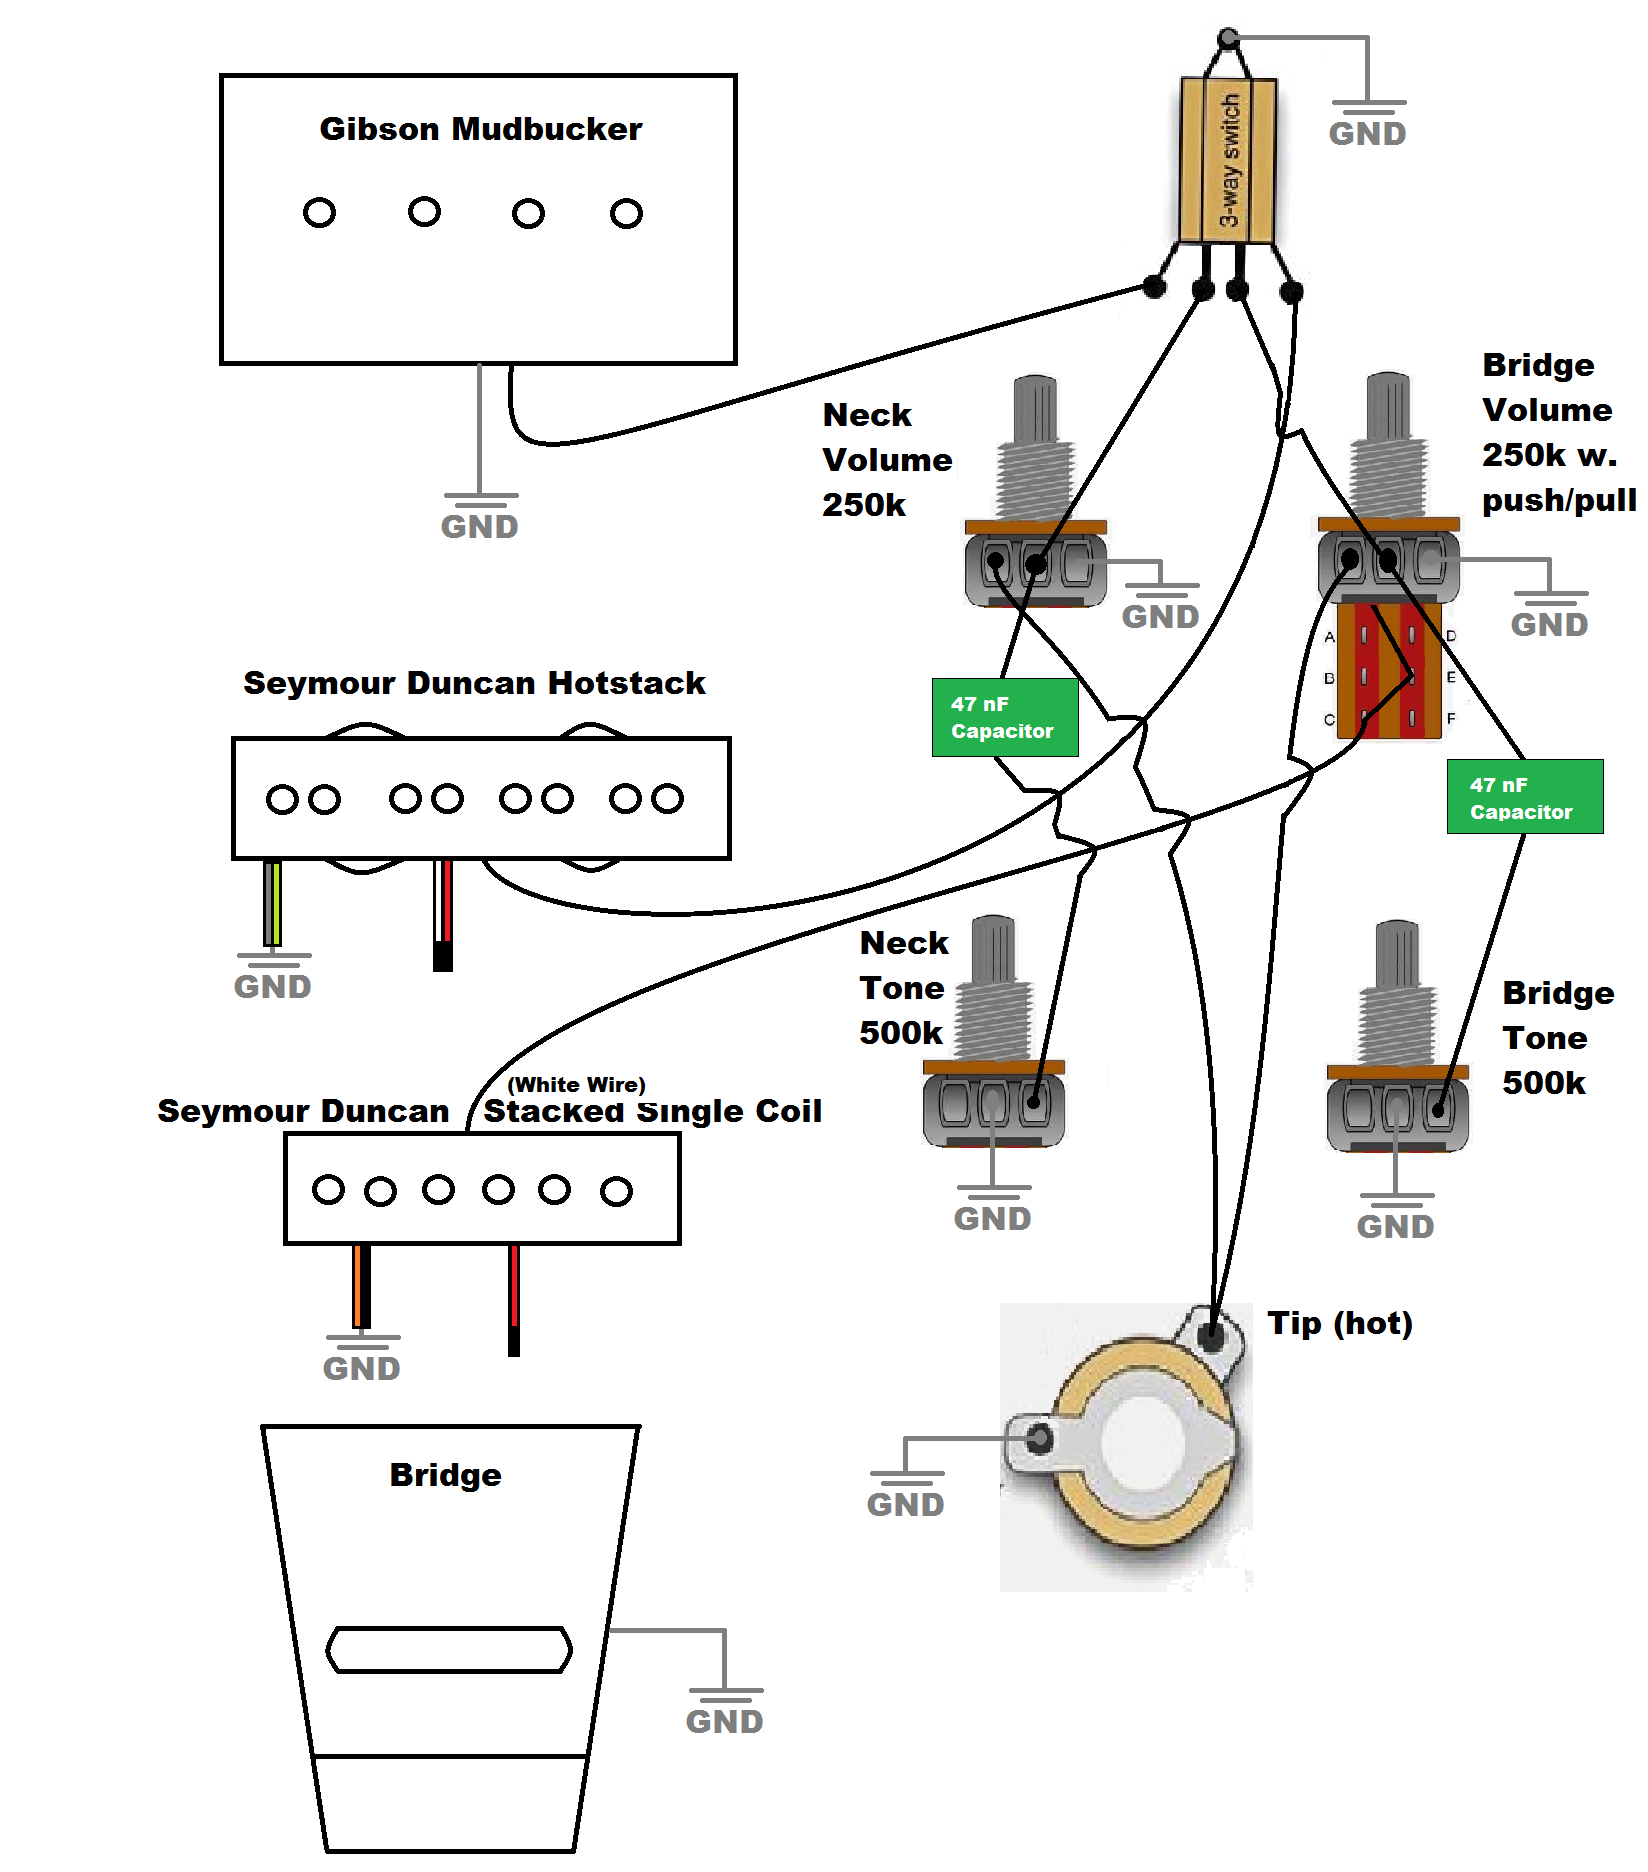 cliff-rickenbacker-wiring-diagram-png.png